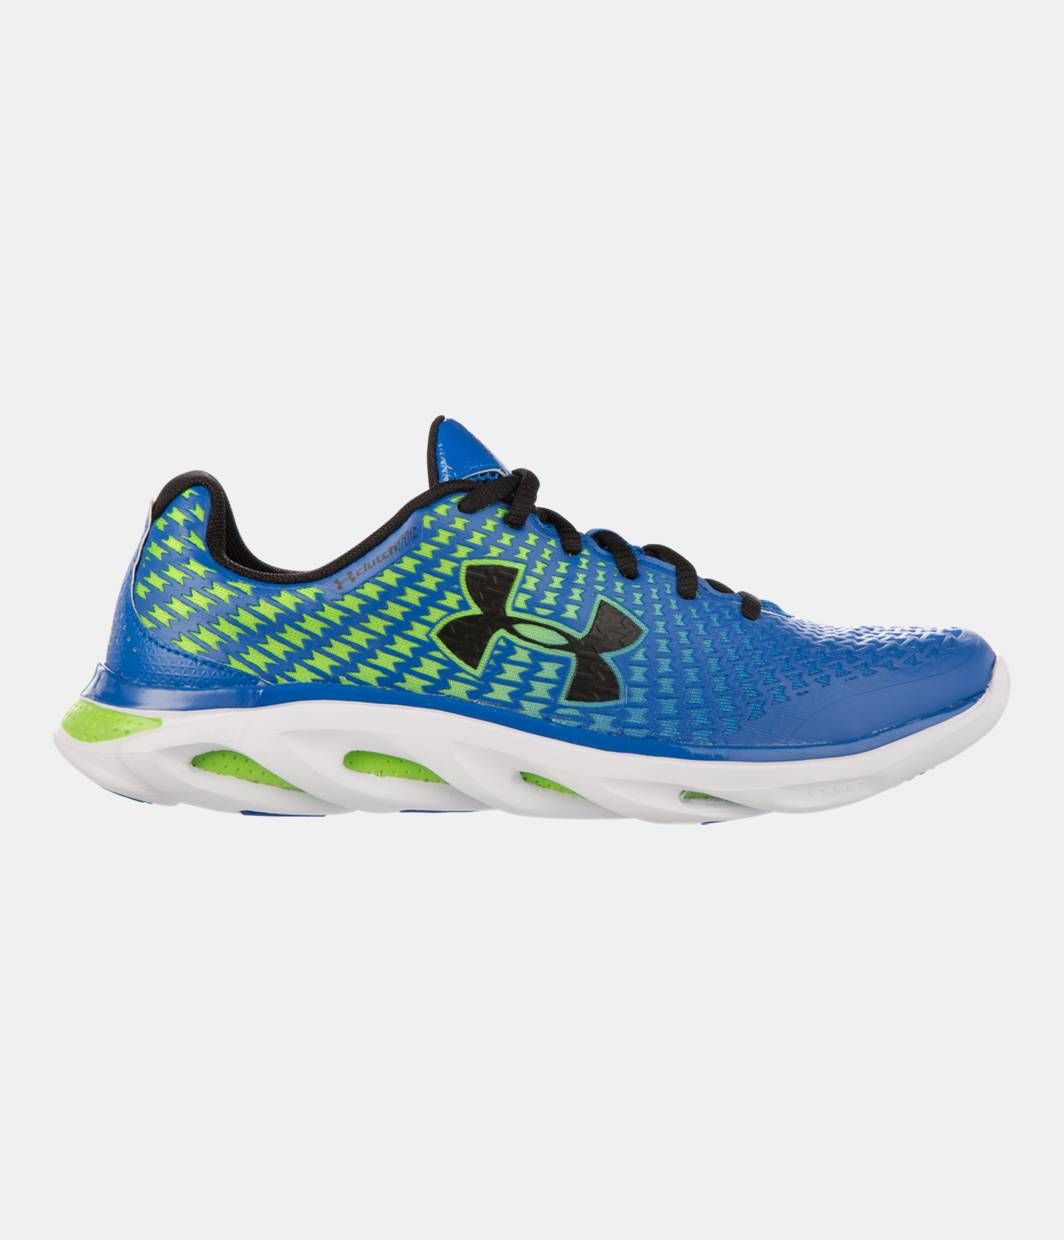 Under Armour Spine Running Shoes For Kids